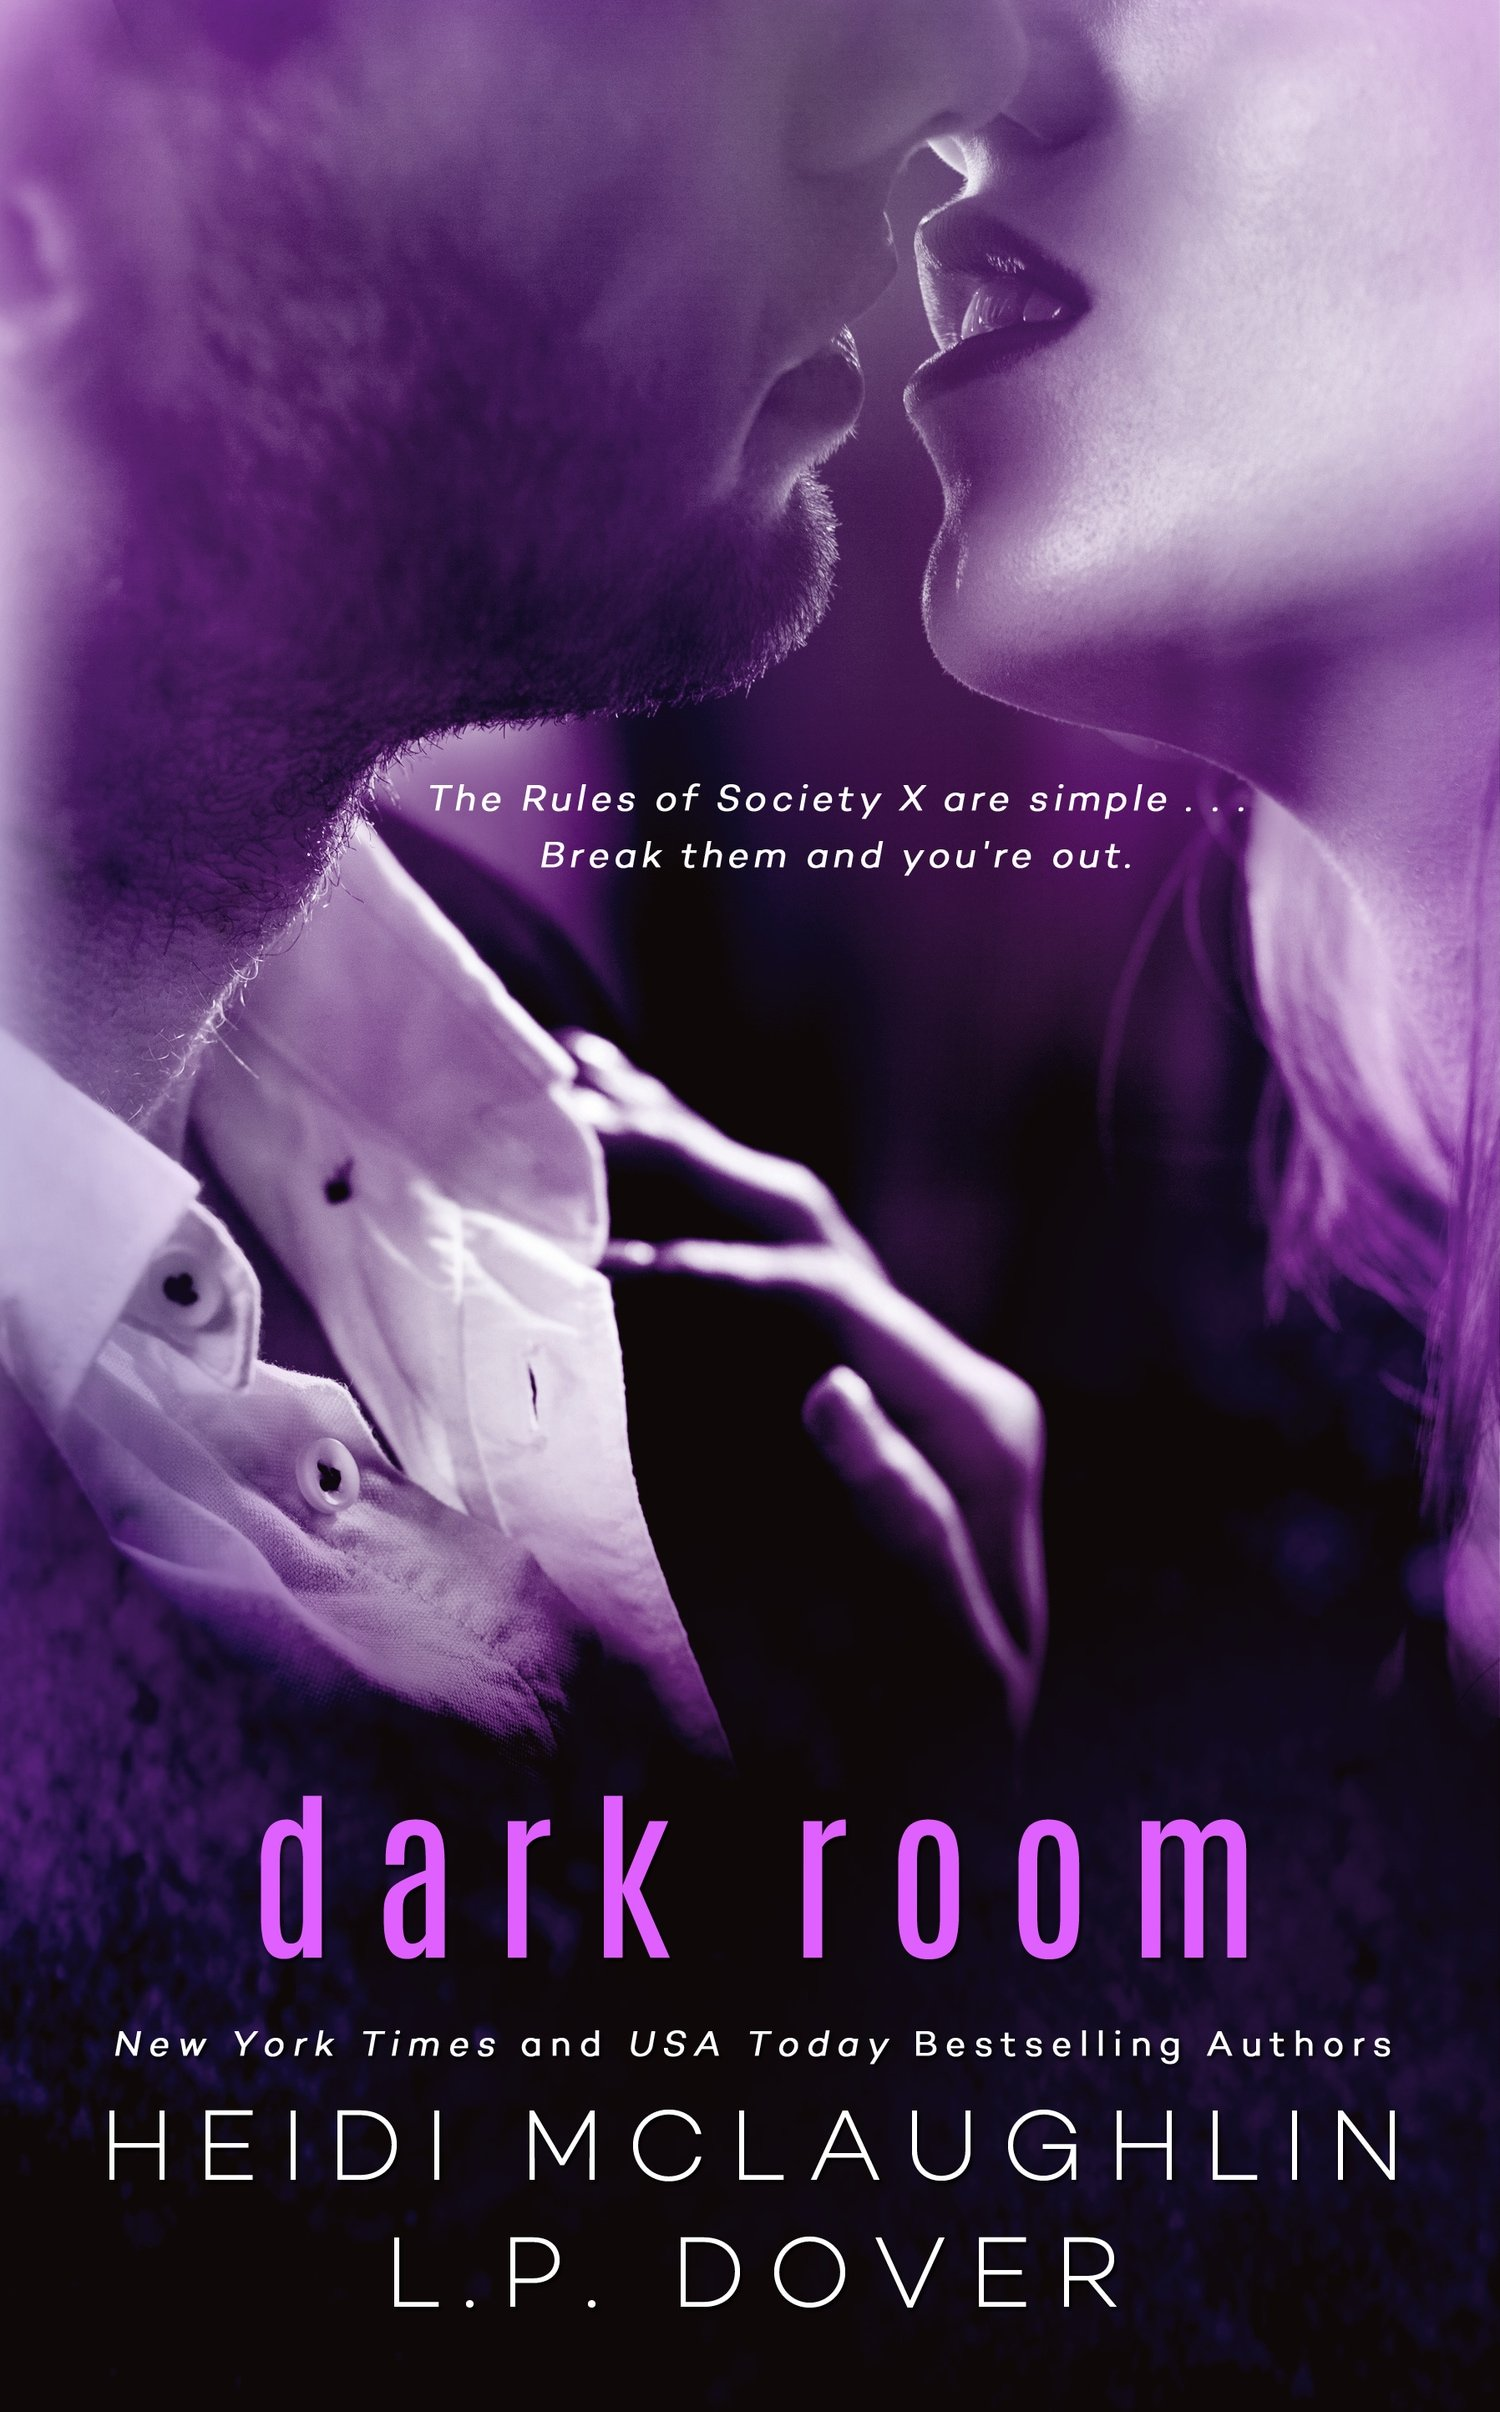 Dark Room by Heidi McLaughlin